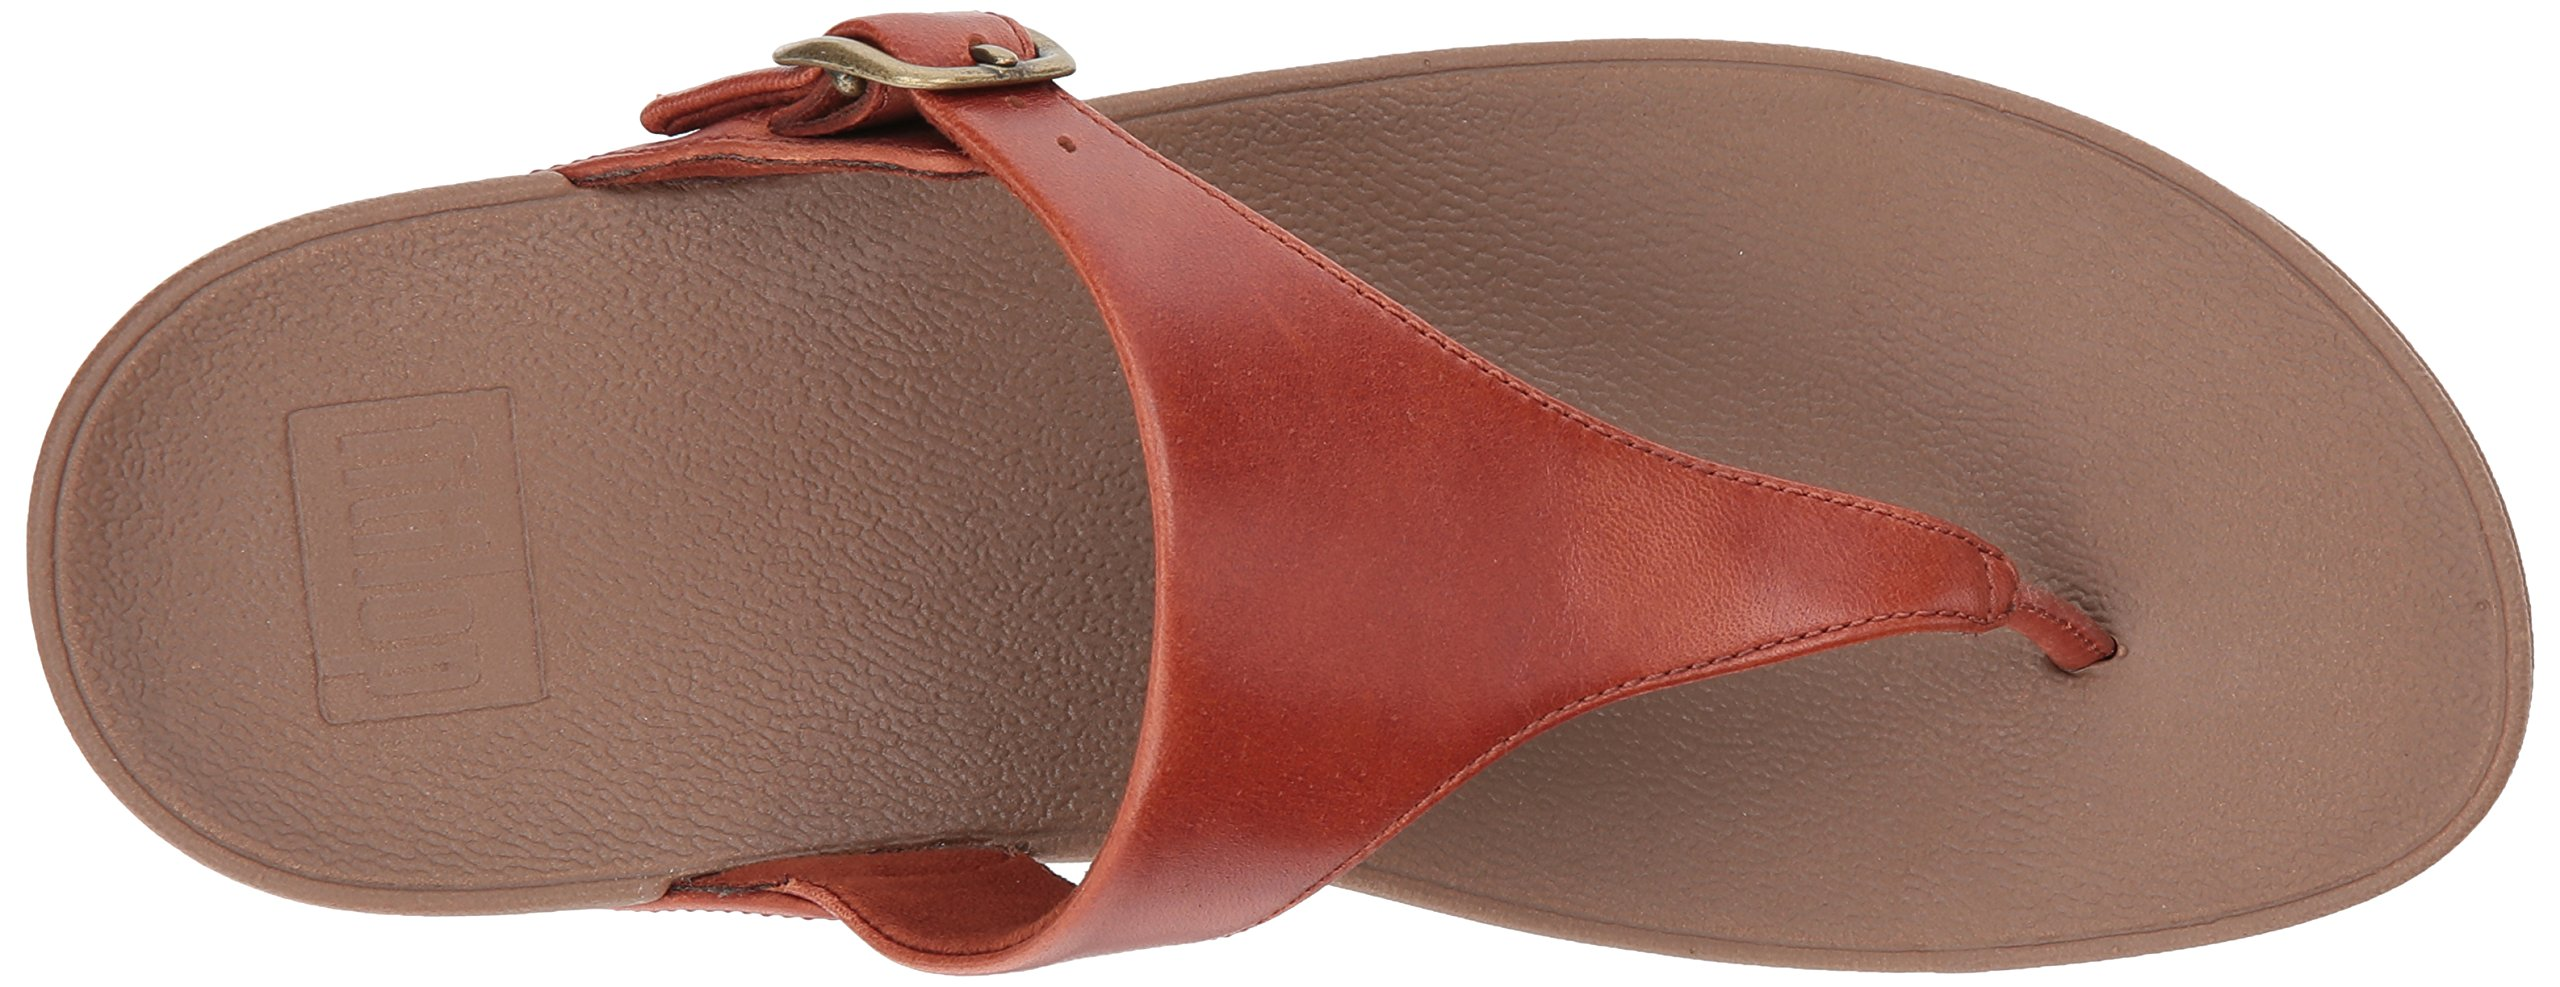 FitFlop Women's The Skinny Leather Toe-Thong Sandal, Dark Tan, 10 M US by FitFlop (Image #8)